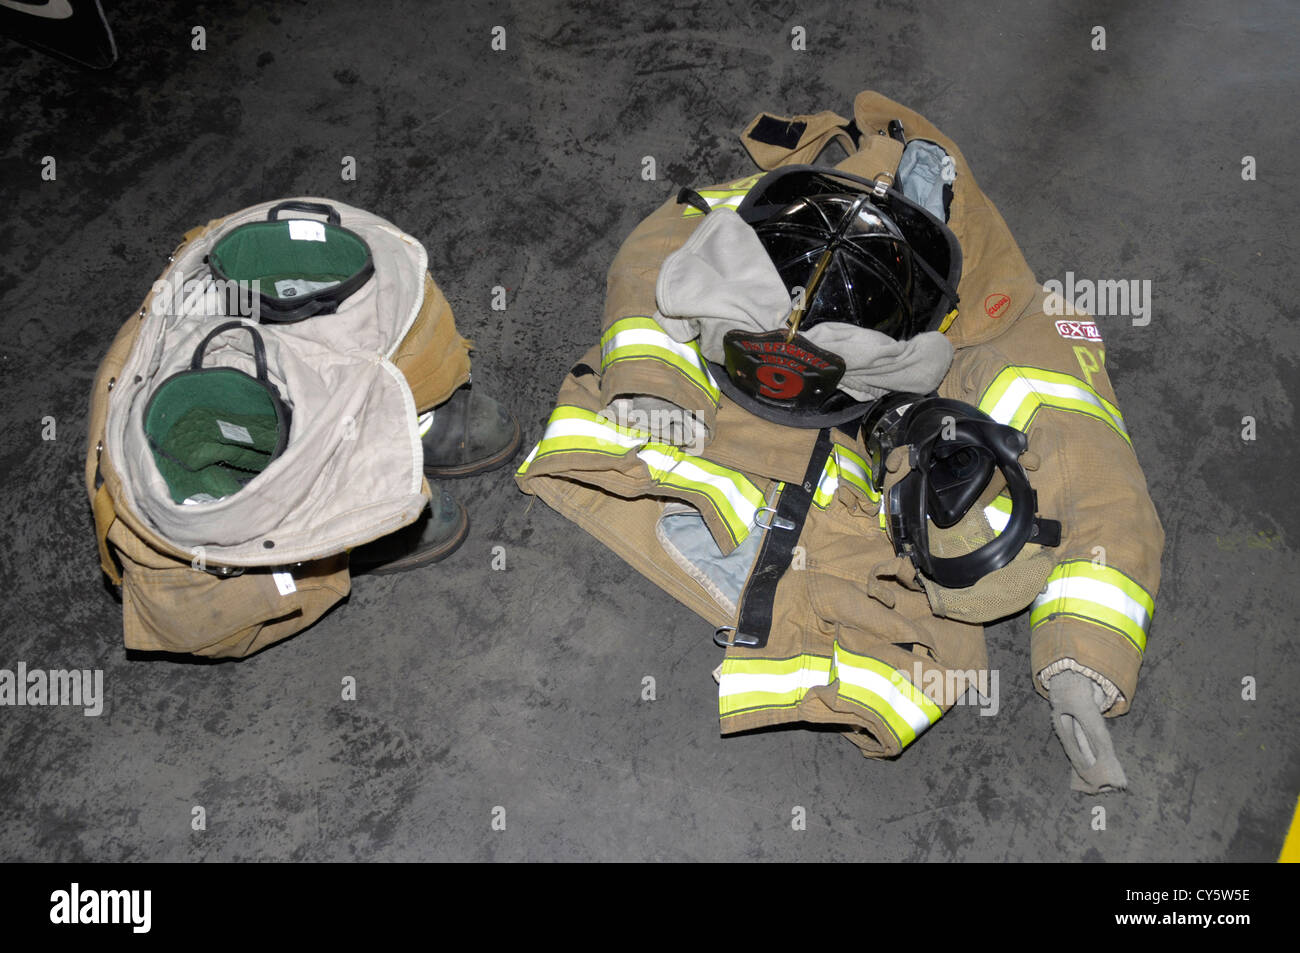 firefighters gear sits on the floor waiting to be used when a call comes in - Stock Image